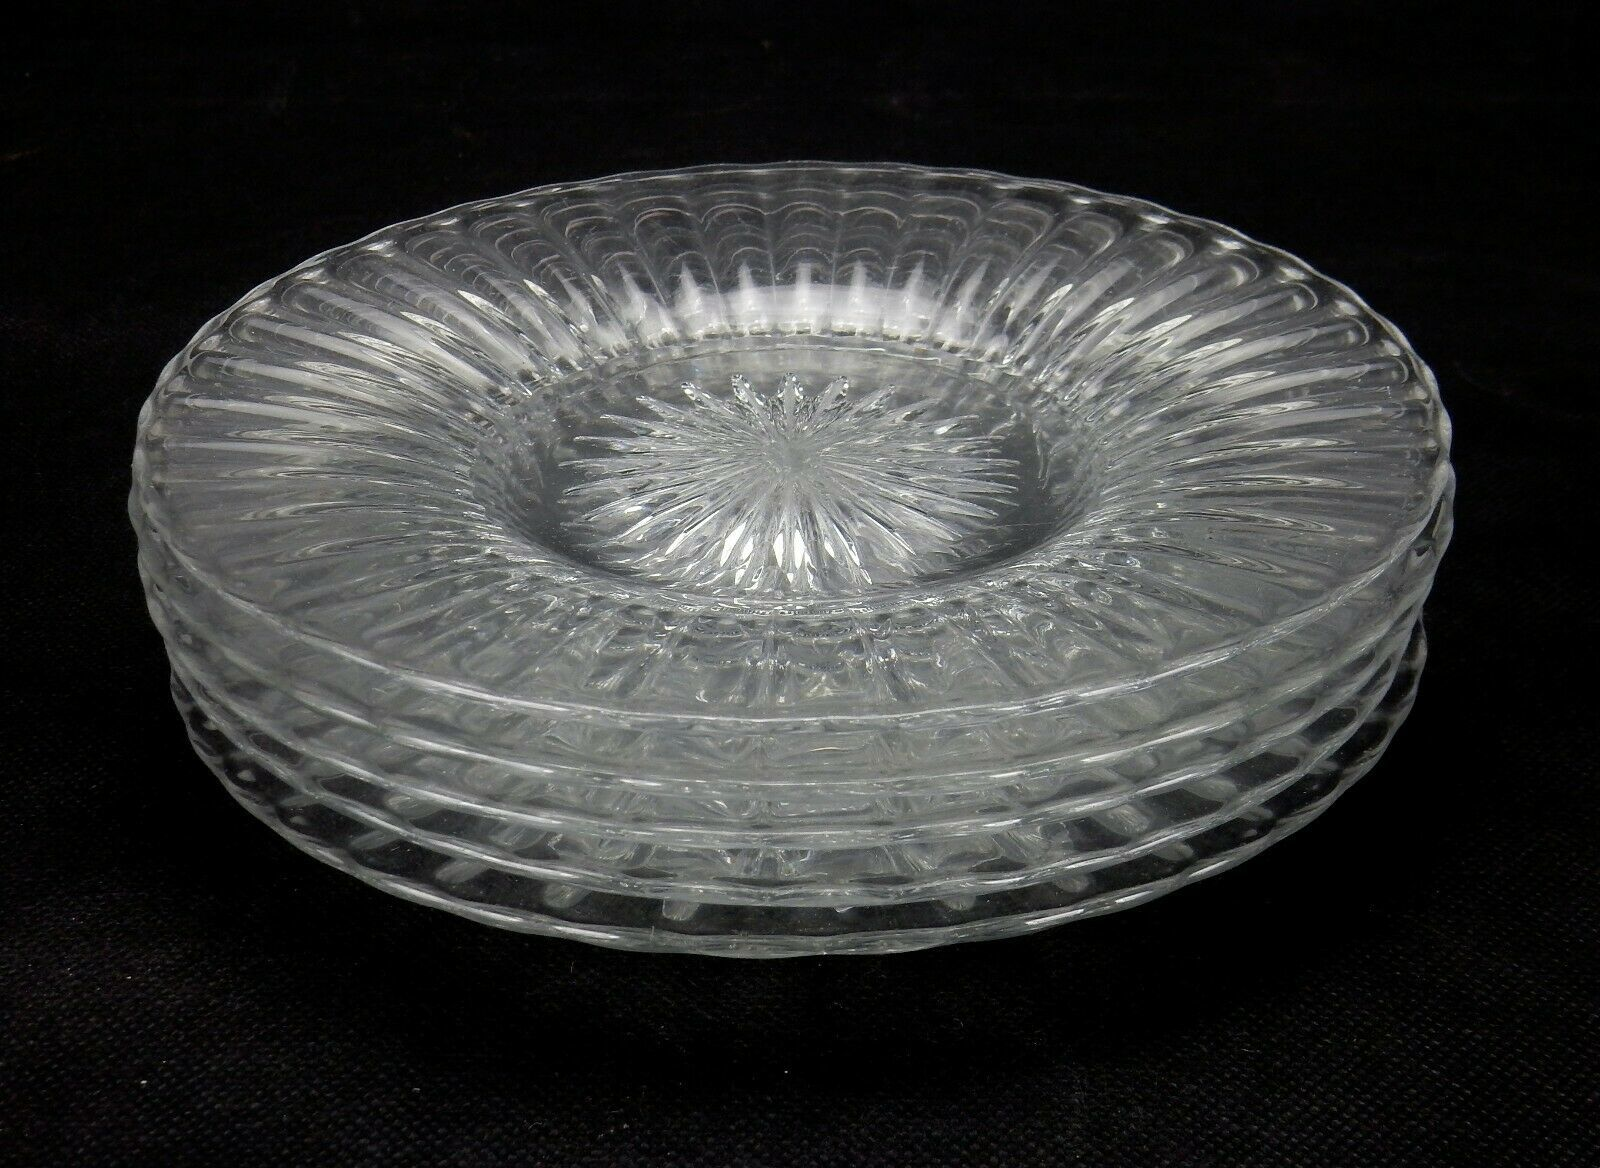 "Primary image for 6 Heisey Salad Plates, Coarse Ribbed Pattern, Set of 6 Heisey 7 3/8"" Plates"